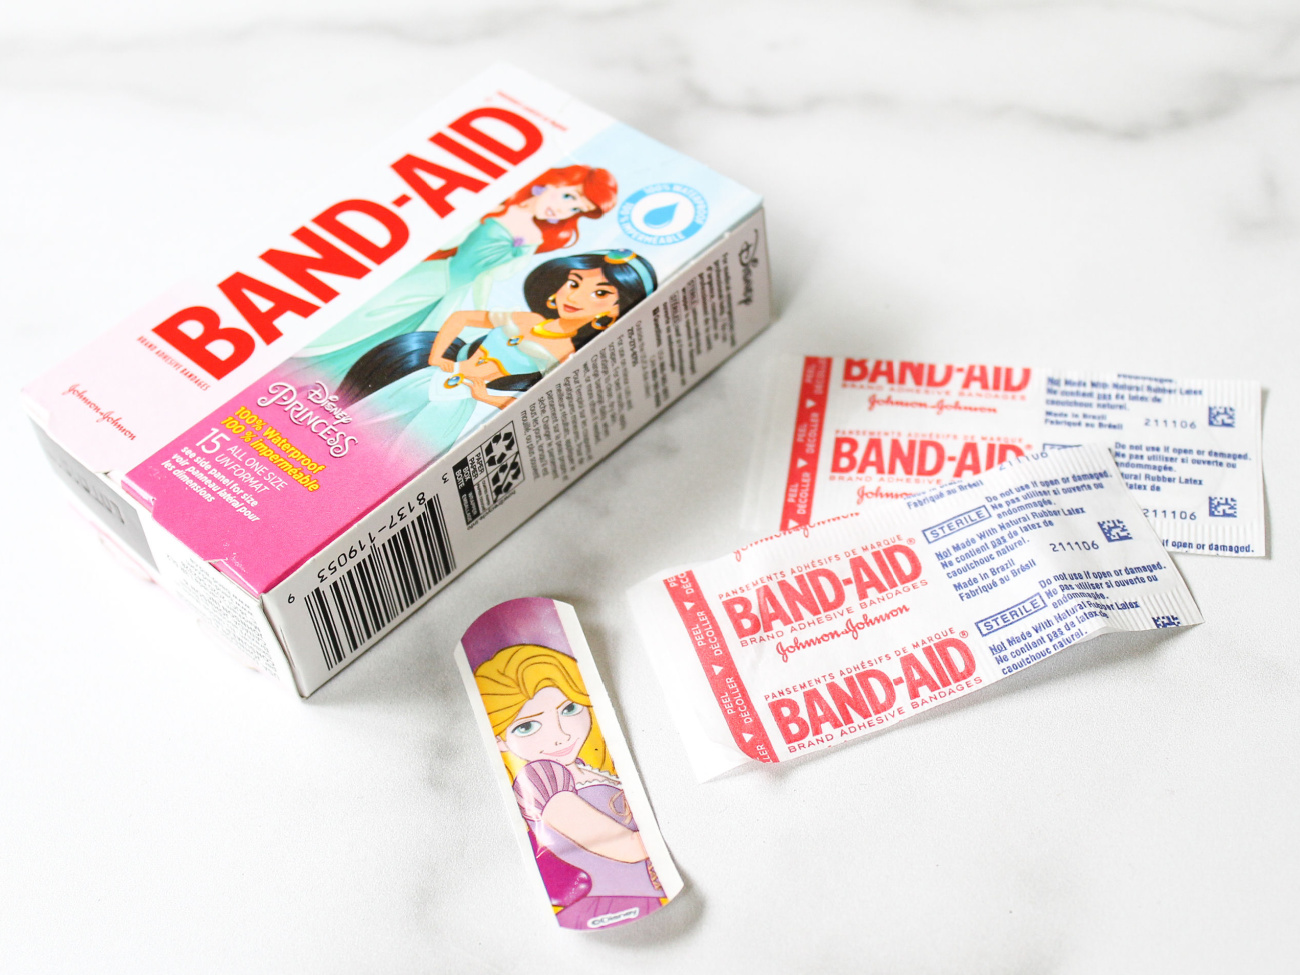 Band-Aid Brand Bandages As Low As FREE At Publix on I Heart Publix 1